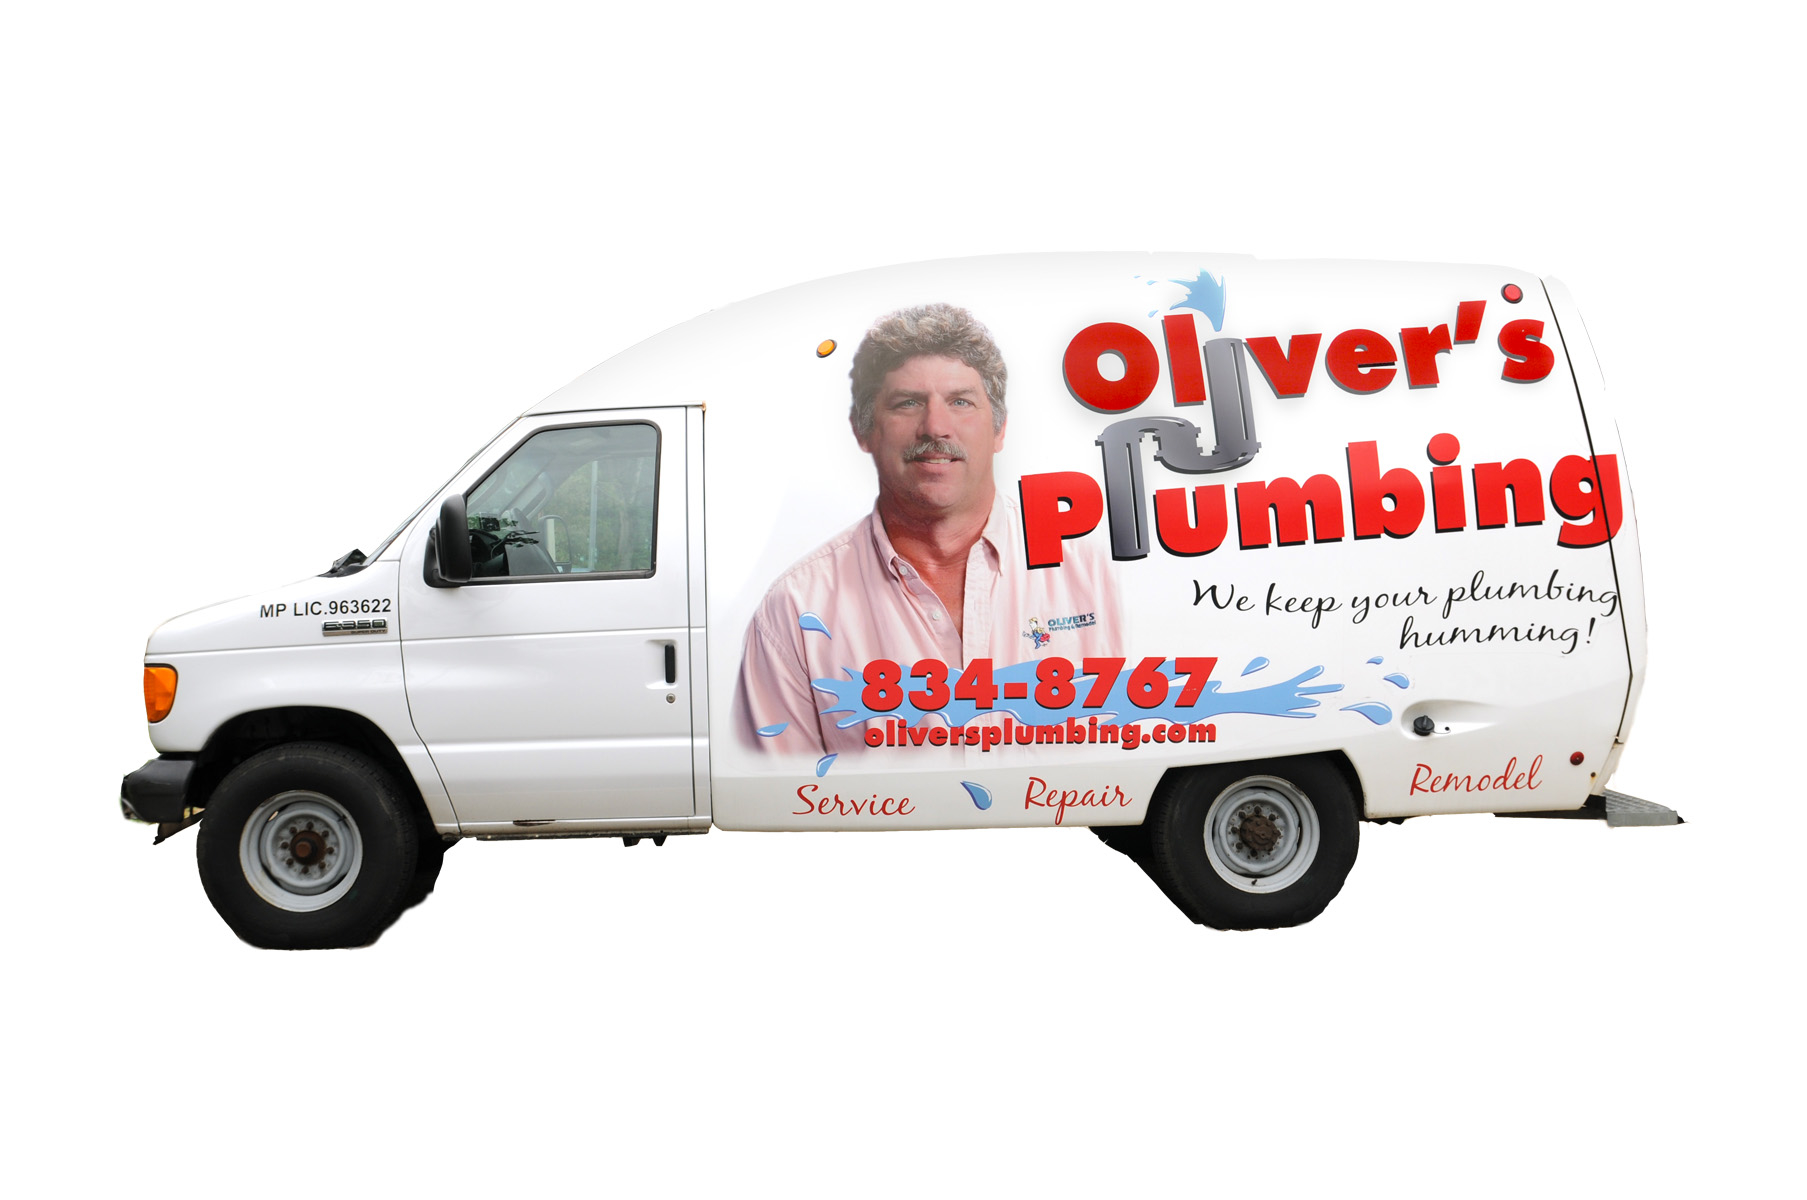 Oliver's Plumbing & Remodel image 0